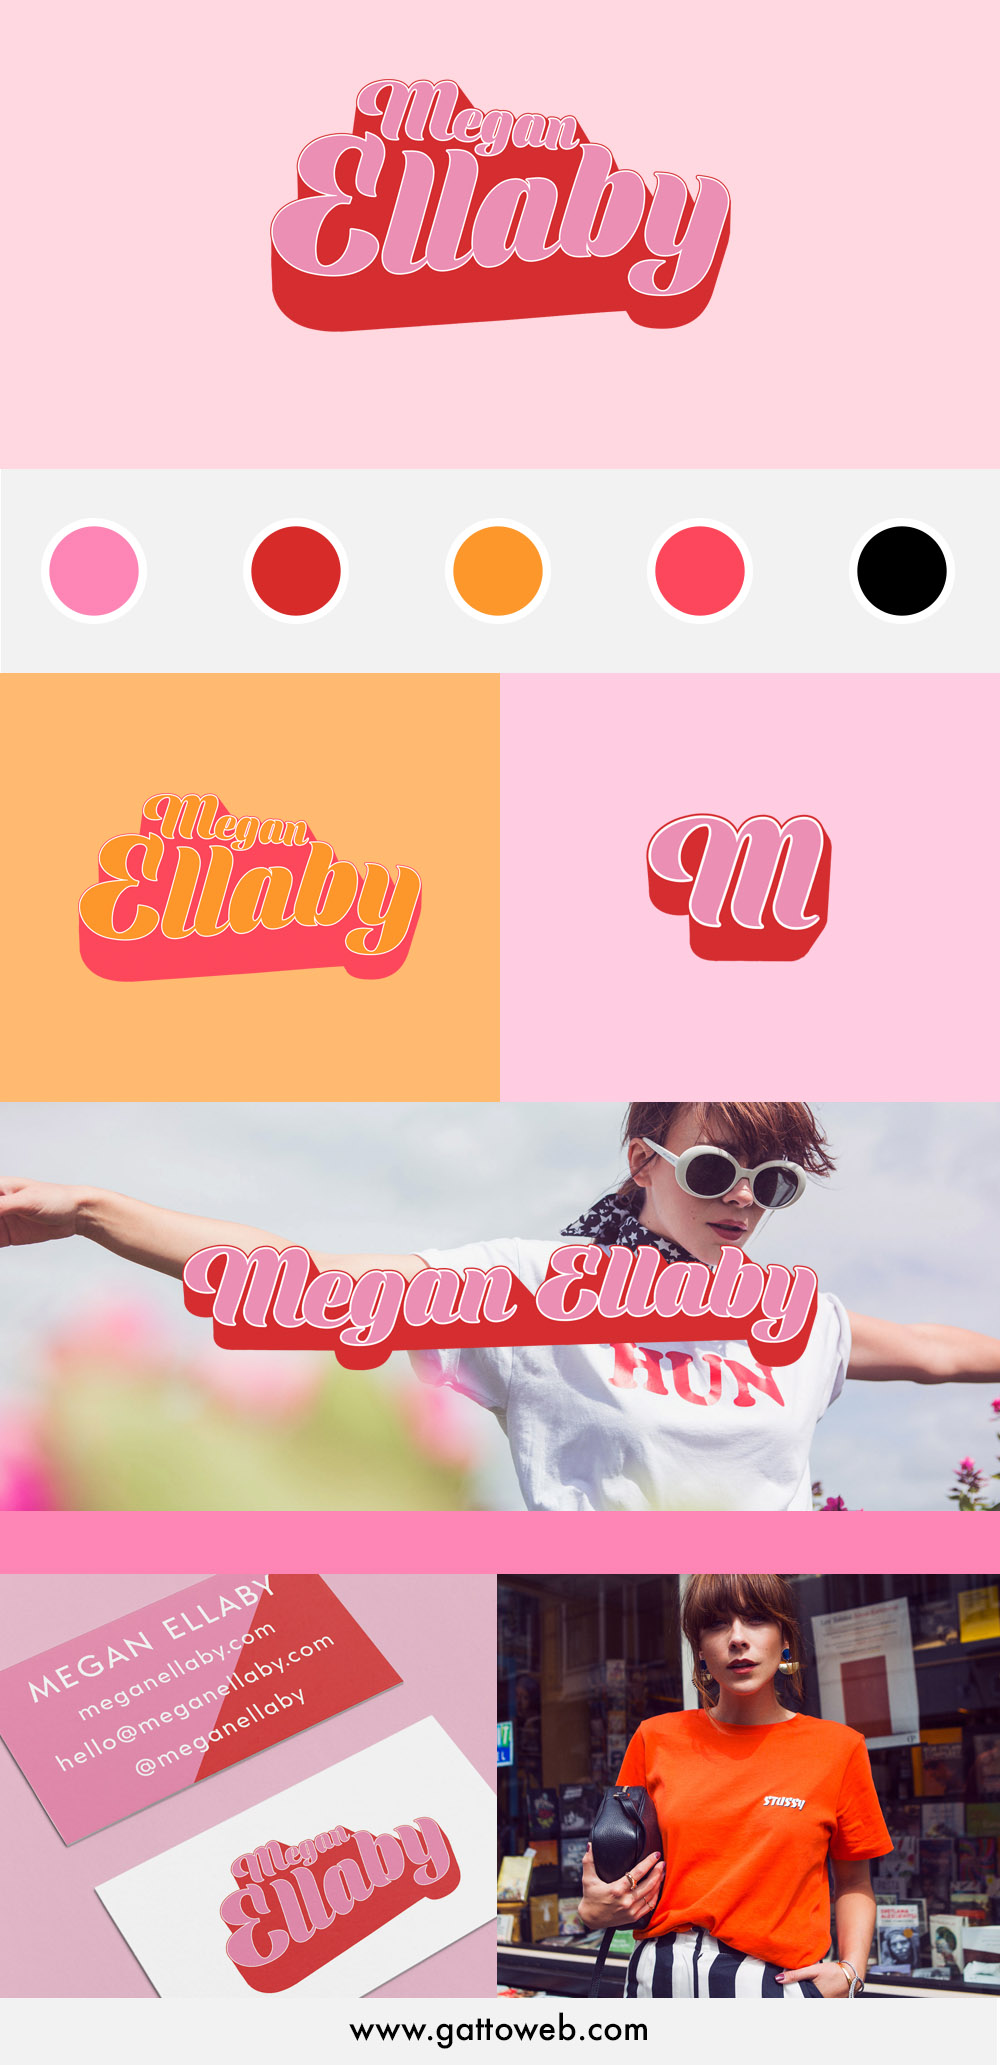 Megan Ellaby Branding Project | Retro 70s 60s branding design | Logo collateral submark | Gatto Branding and Website Design